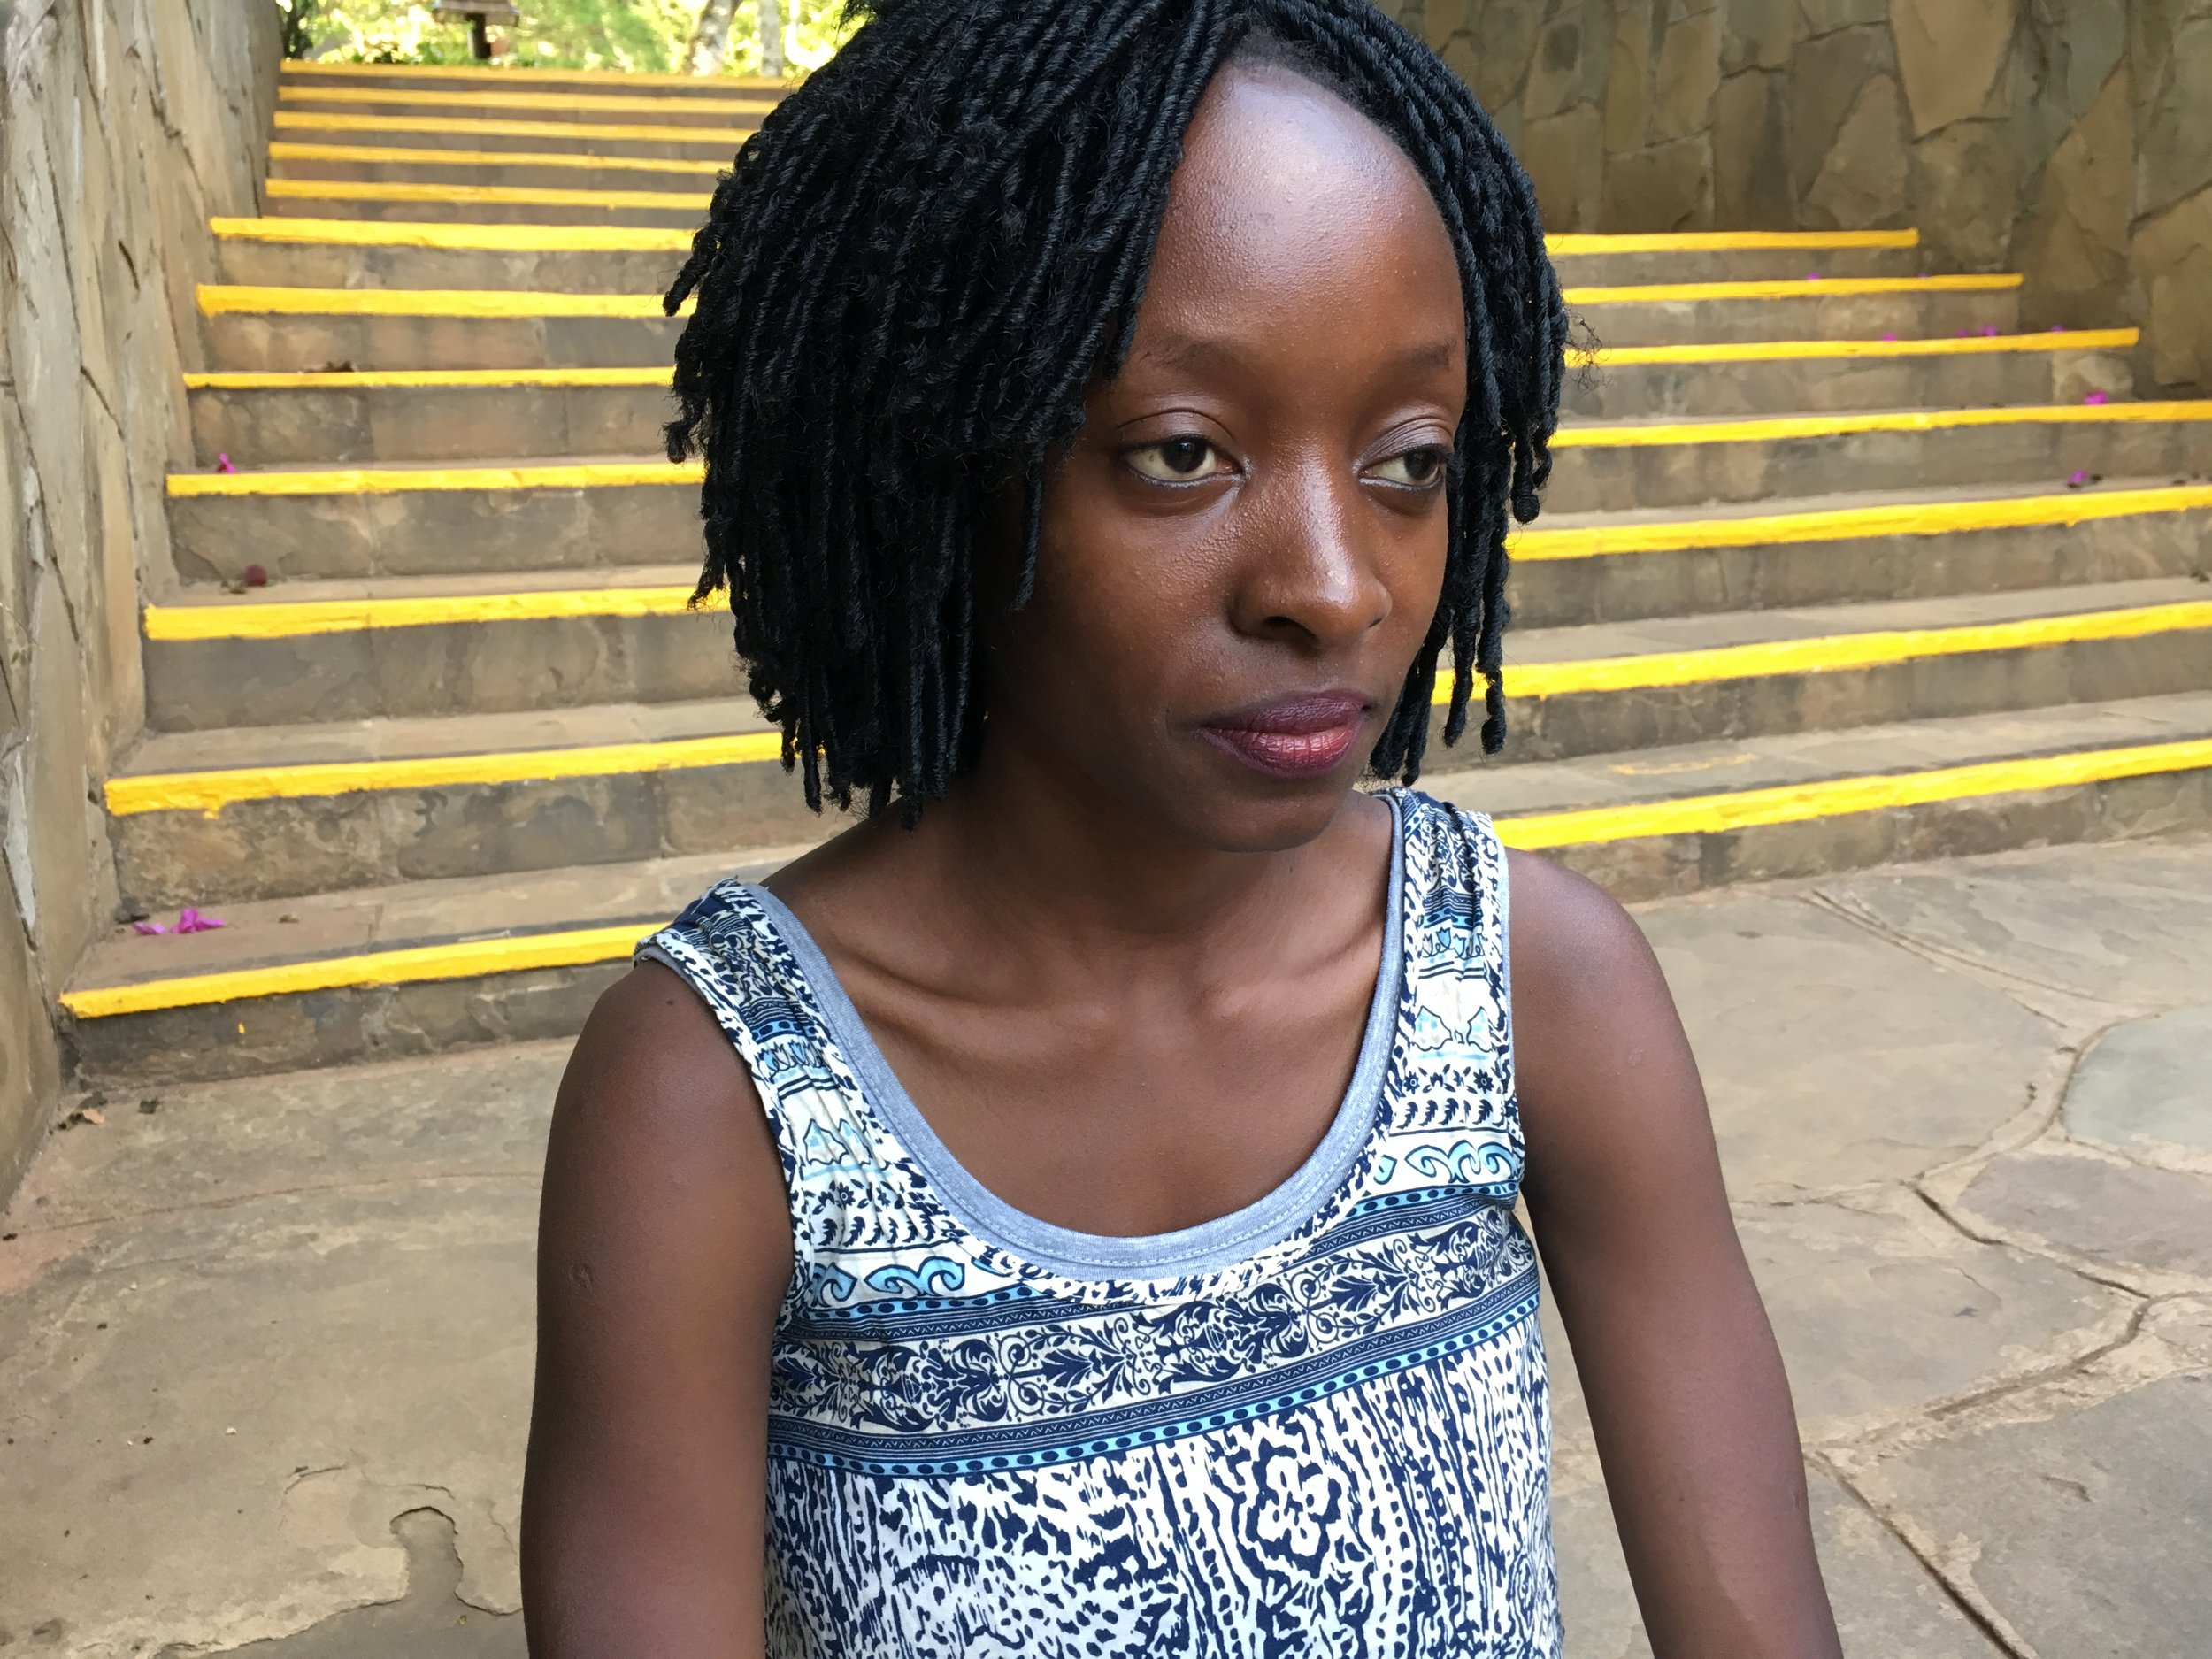 Geraldine works with DREAMS Innovation Challenge grantee Brick by Brick, which teaches girls to construct reusable menstrual pads for personal use and income generation, and enables in-school reproductive health education .